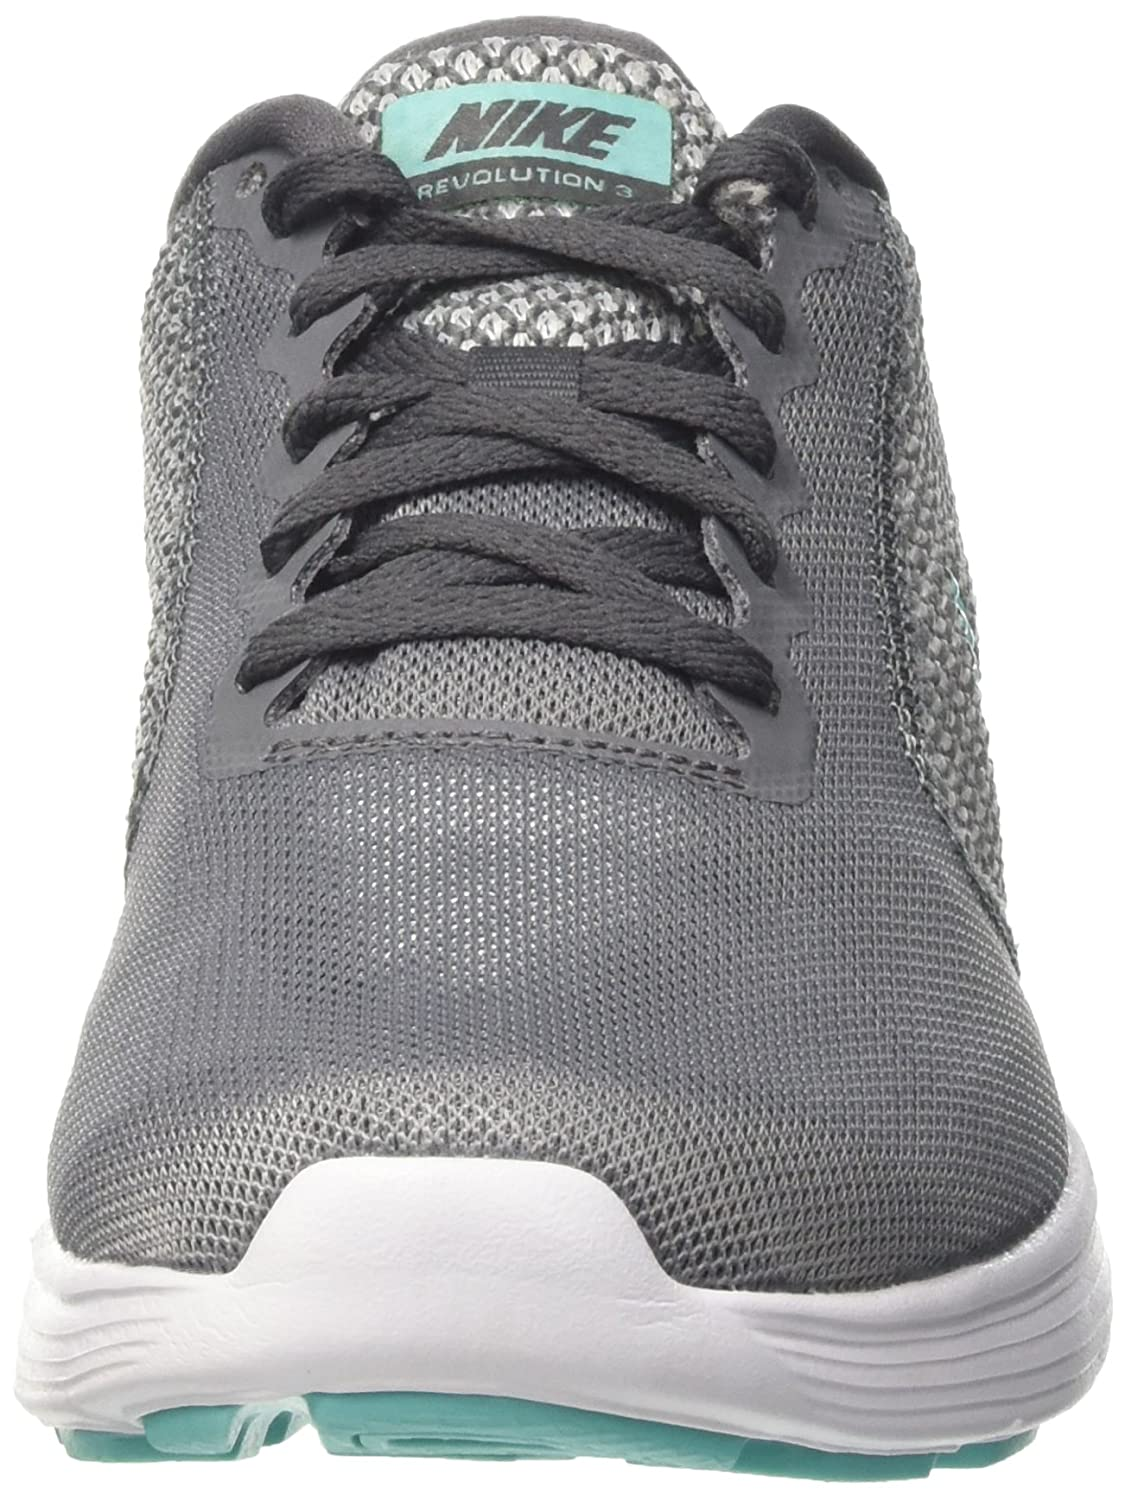 NIKE Women's US|Cool Revolution 3 Running Shoe B007NALJ5A 8.5 B(M) US|Cool Women's Grey/Aurora Green/Dark Grey/White 15bf33